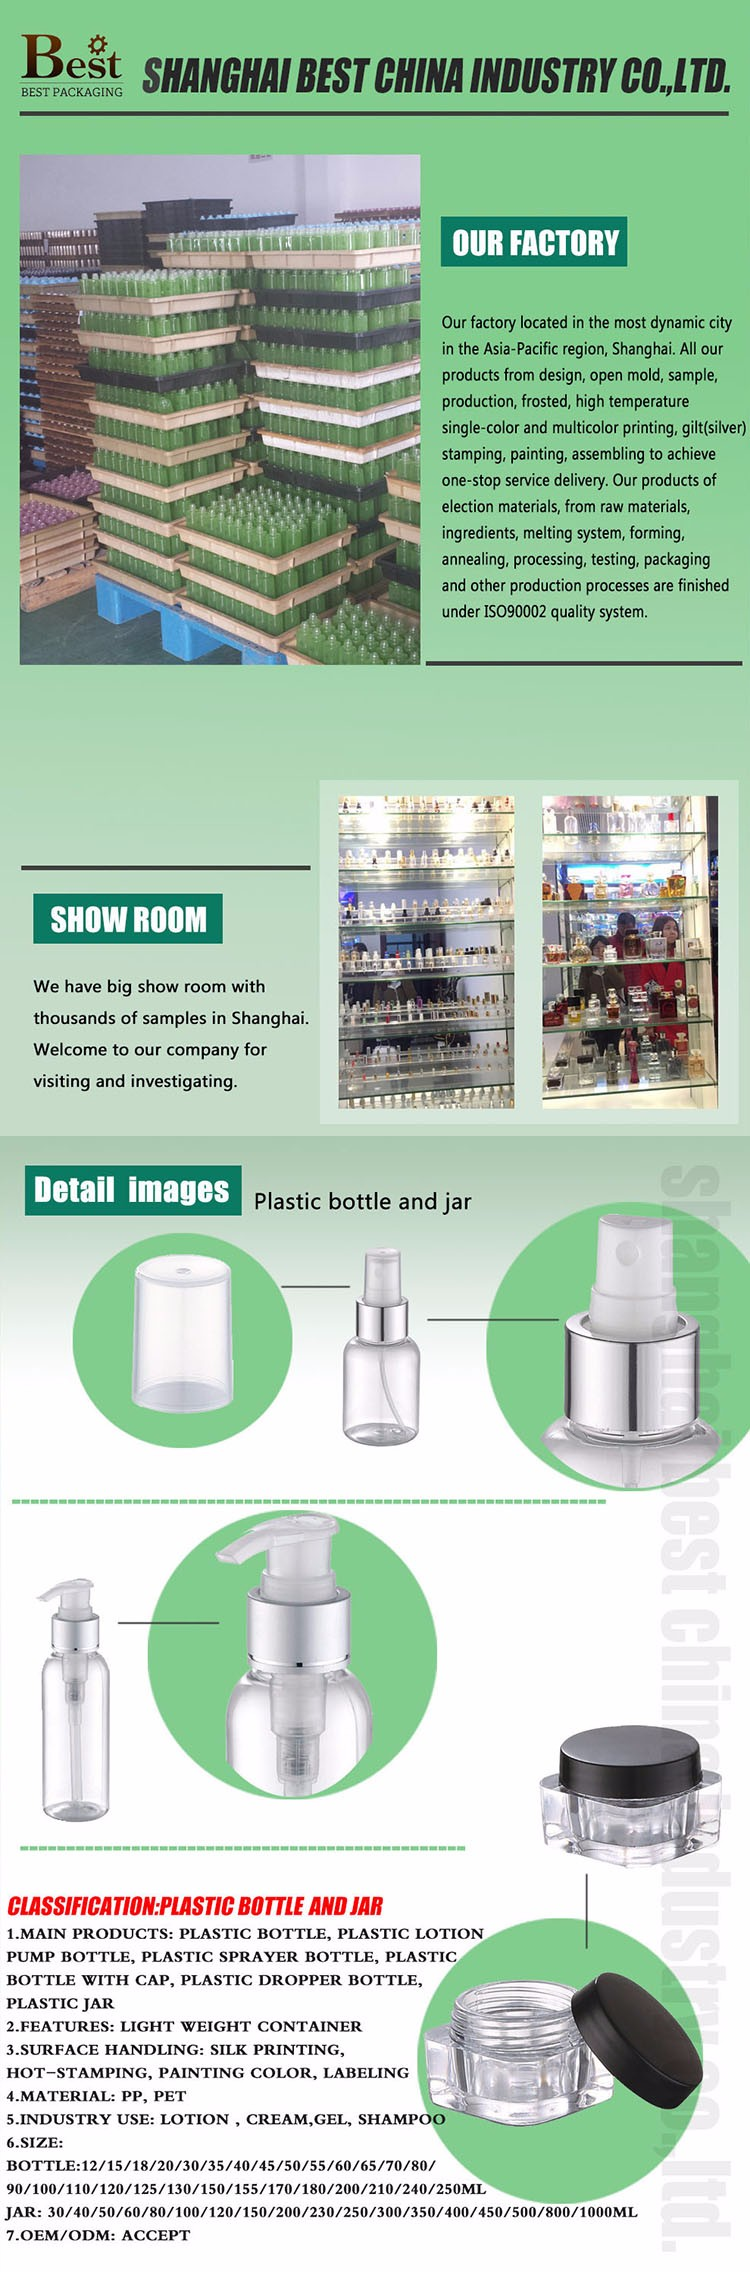 on sale 15ml plastic pet bottle white bottle body silvery aluminum cap with insert plastic lotion bottle for body lotion